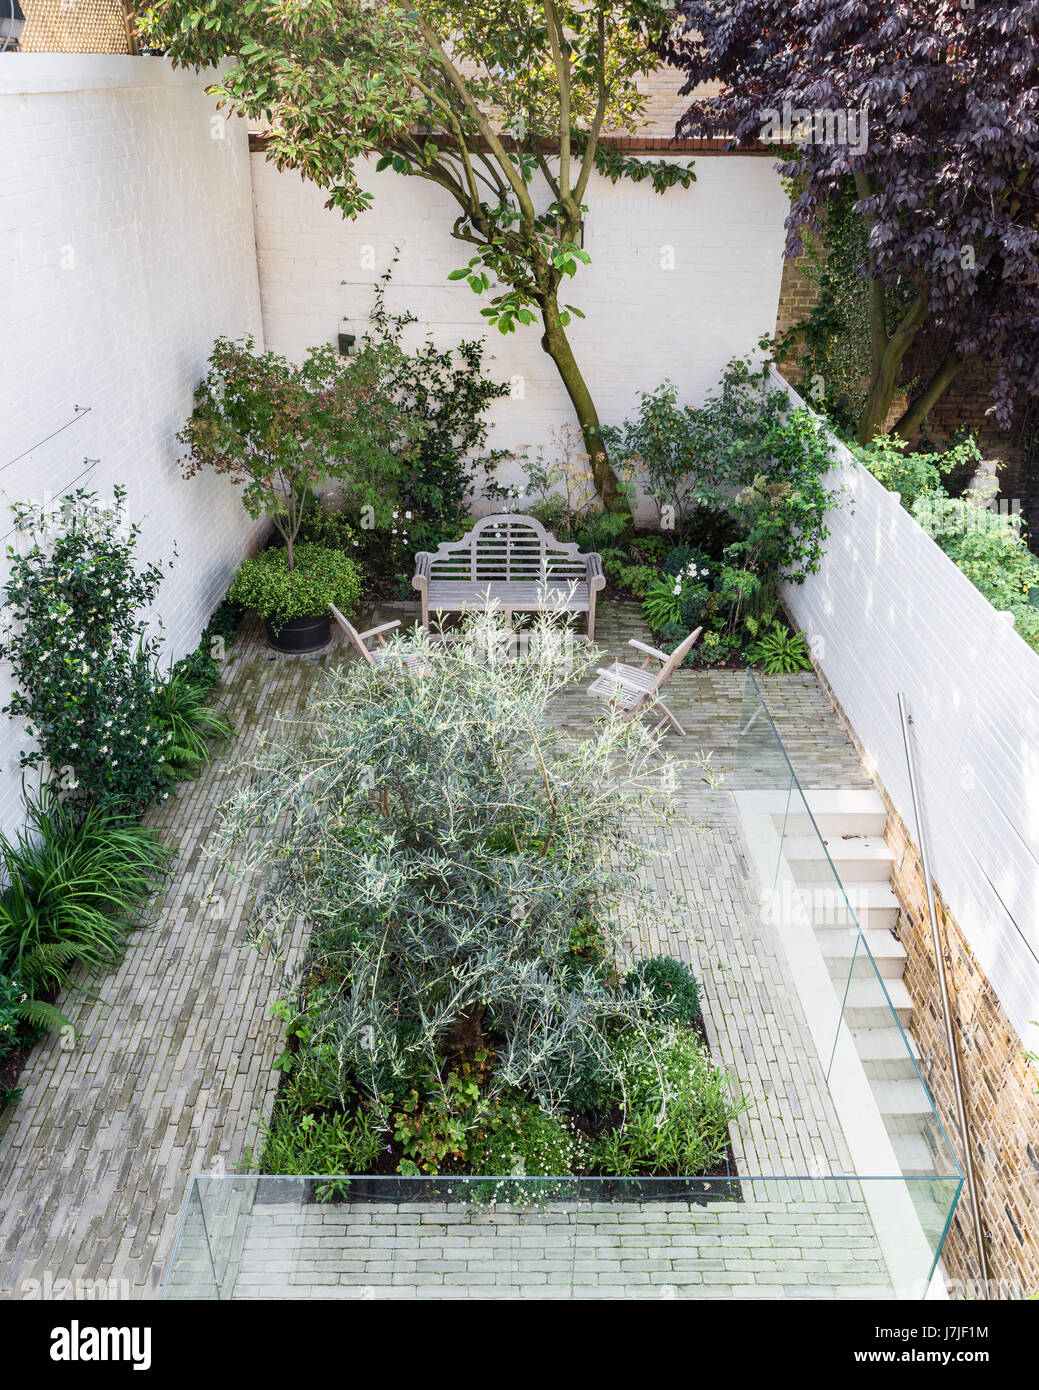 White Painted Walls And Pale Horizontal Wood Trellis In Garden Landscaped  By Garden Makers.